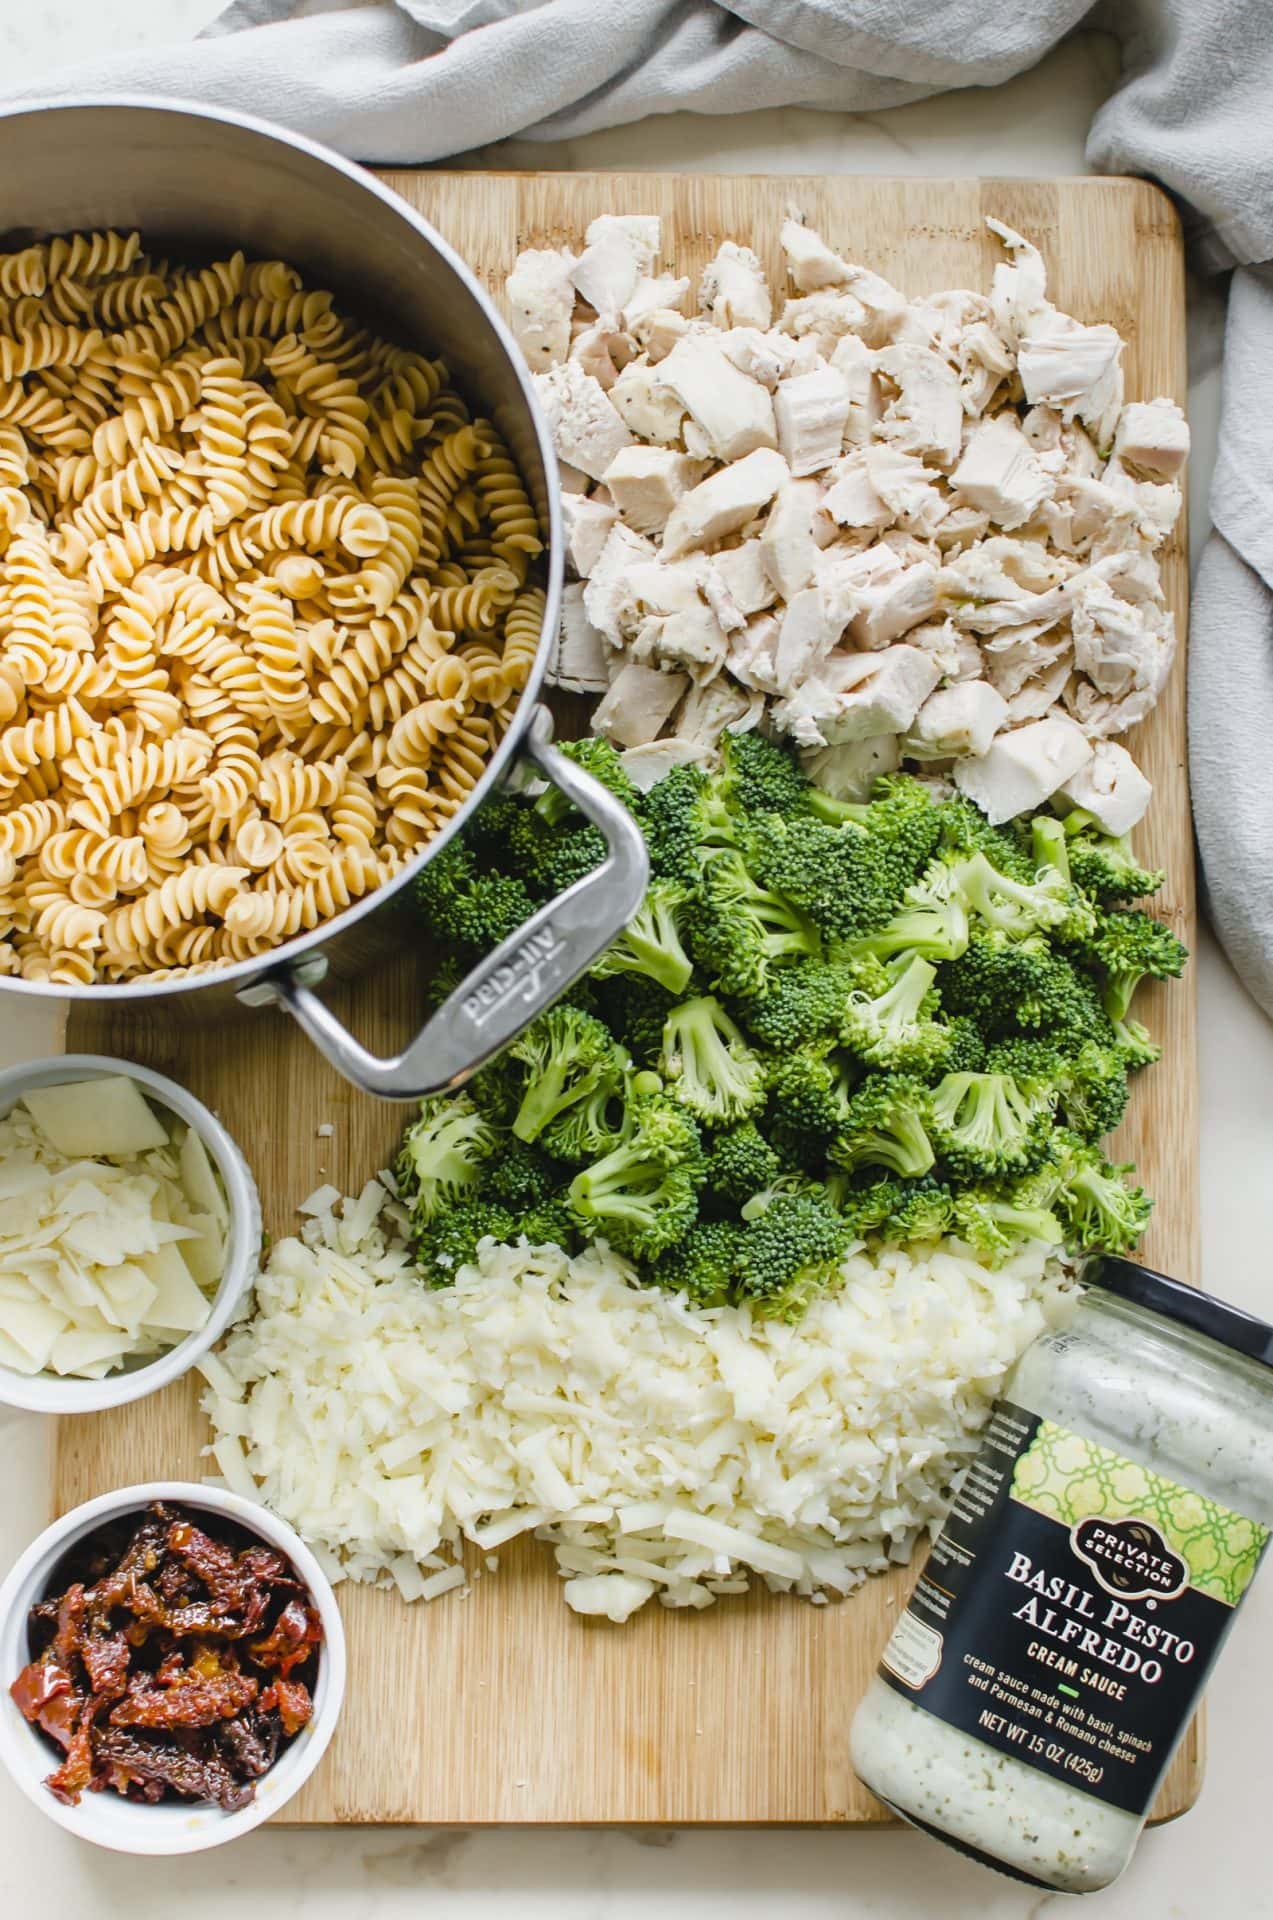 A cutting board with all of the prepped ingredients spread out for making Chicken Rotini Bake.